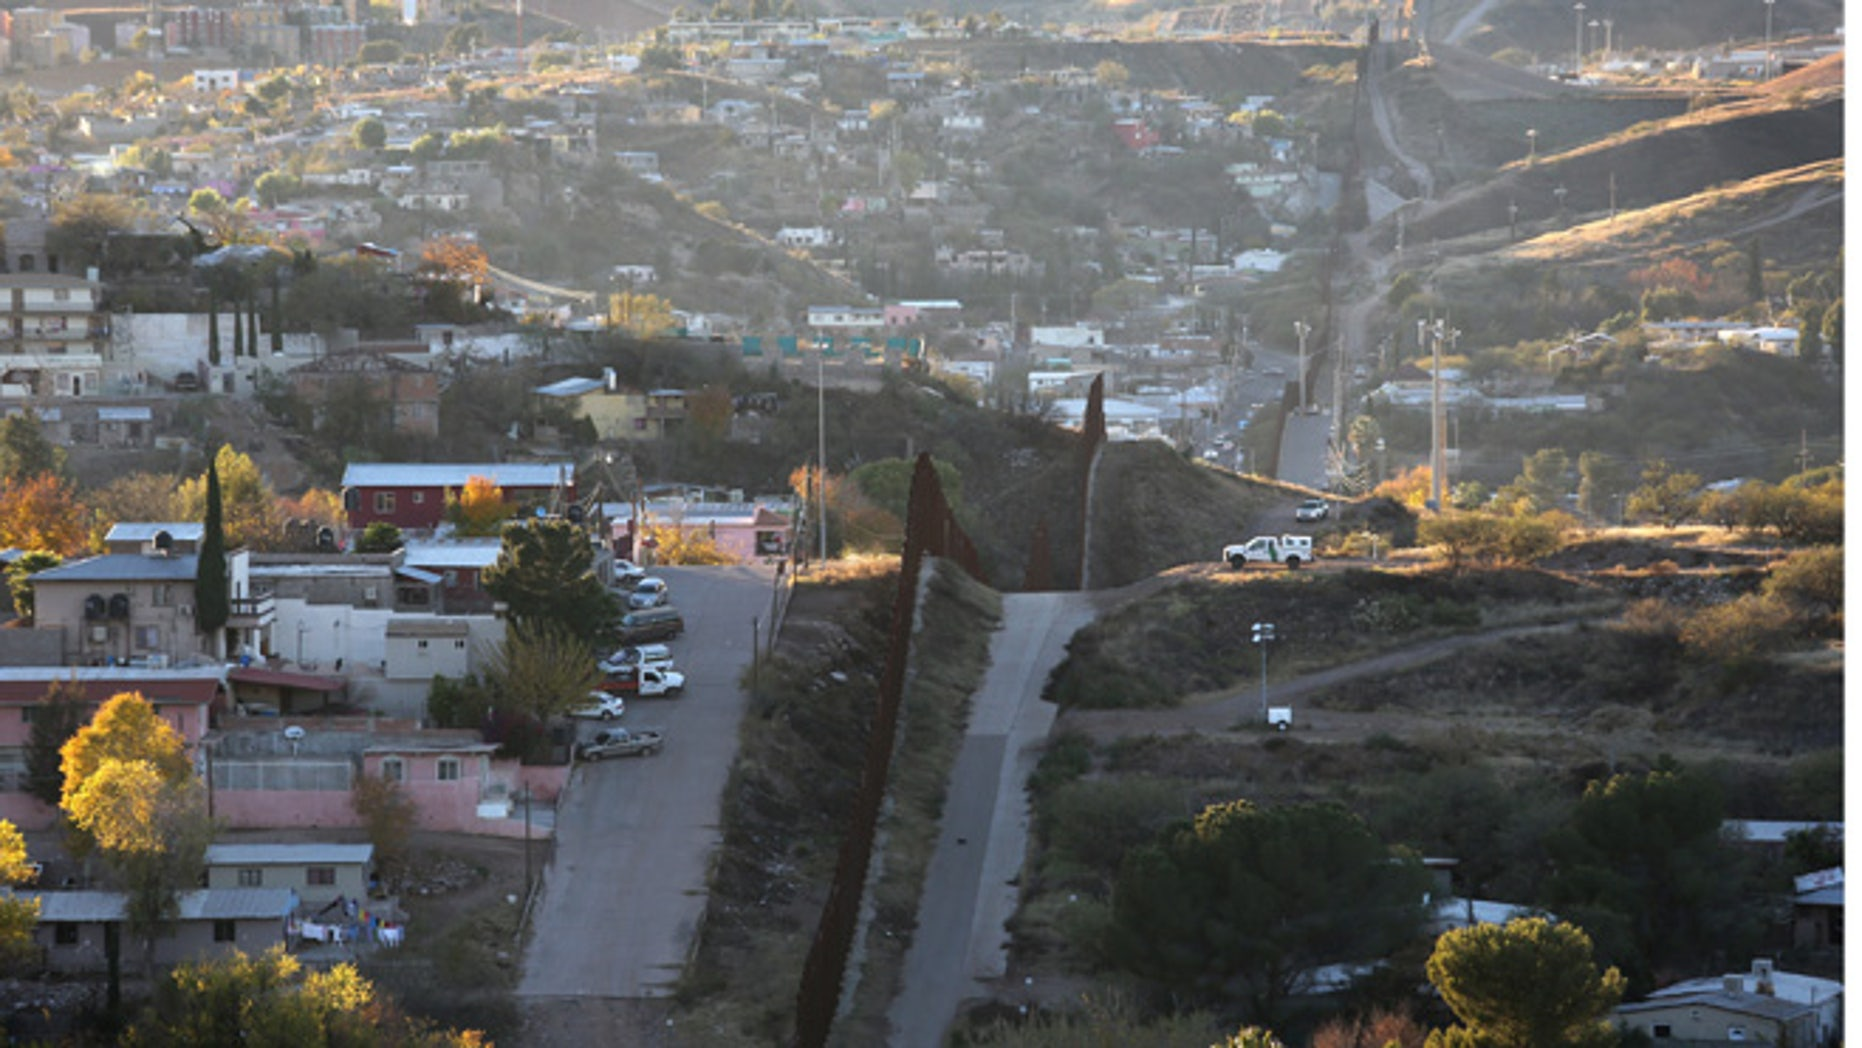 NOGALES, AZ - DECEMBER 09:  A U.S. Border Patrol agent watches over the U.S.-Mexico border fence from his vehicle on December 9, 2014 in Nogales, Arizona. With increased manpower and funding in recent years, the Border Patol has seen the number illegal crossings and apprehensions of undocumented immigrants decrease in the Tucson sector. Agents are waiting to see if the improved U.S. economy and housing construction will again draw more immigrants from the south. (Photo by John Moore/Getty Images)